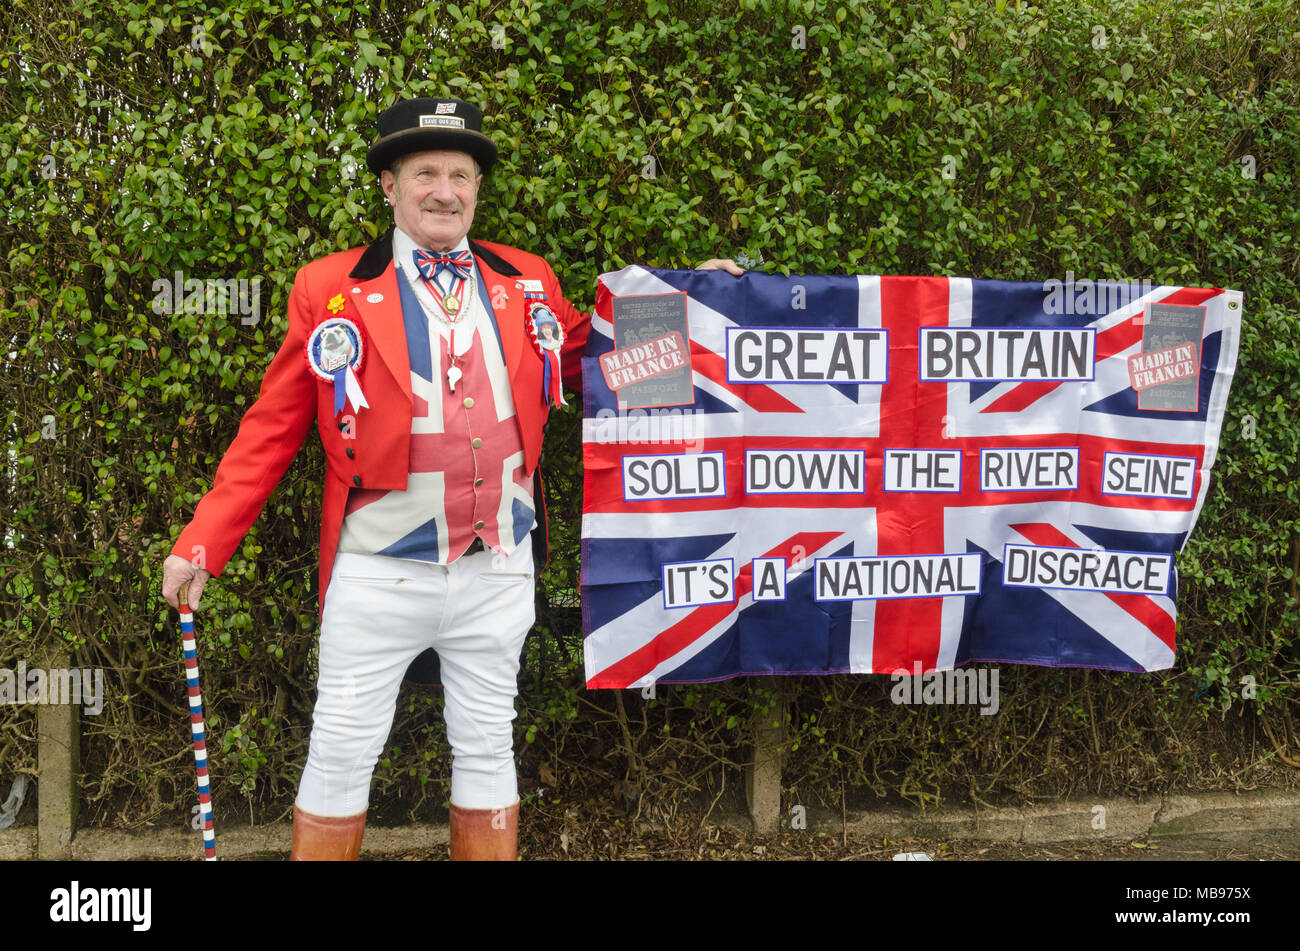 Man dressed as John Bull protesting against decision to print new blue British passports in France - Stock Image